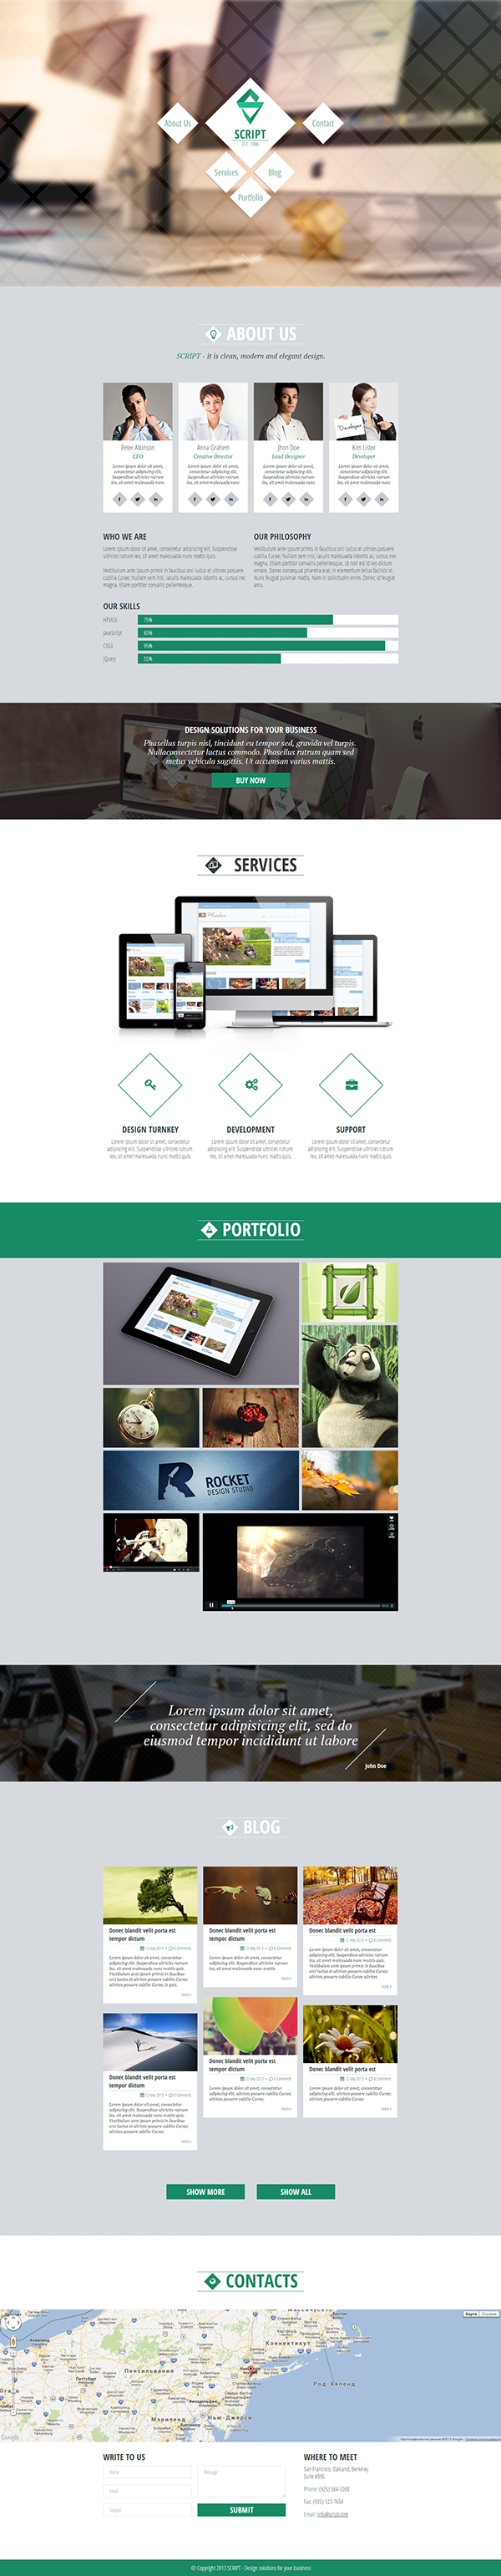 Script Html5 One Page Template On Behance